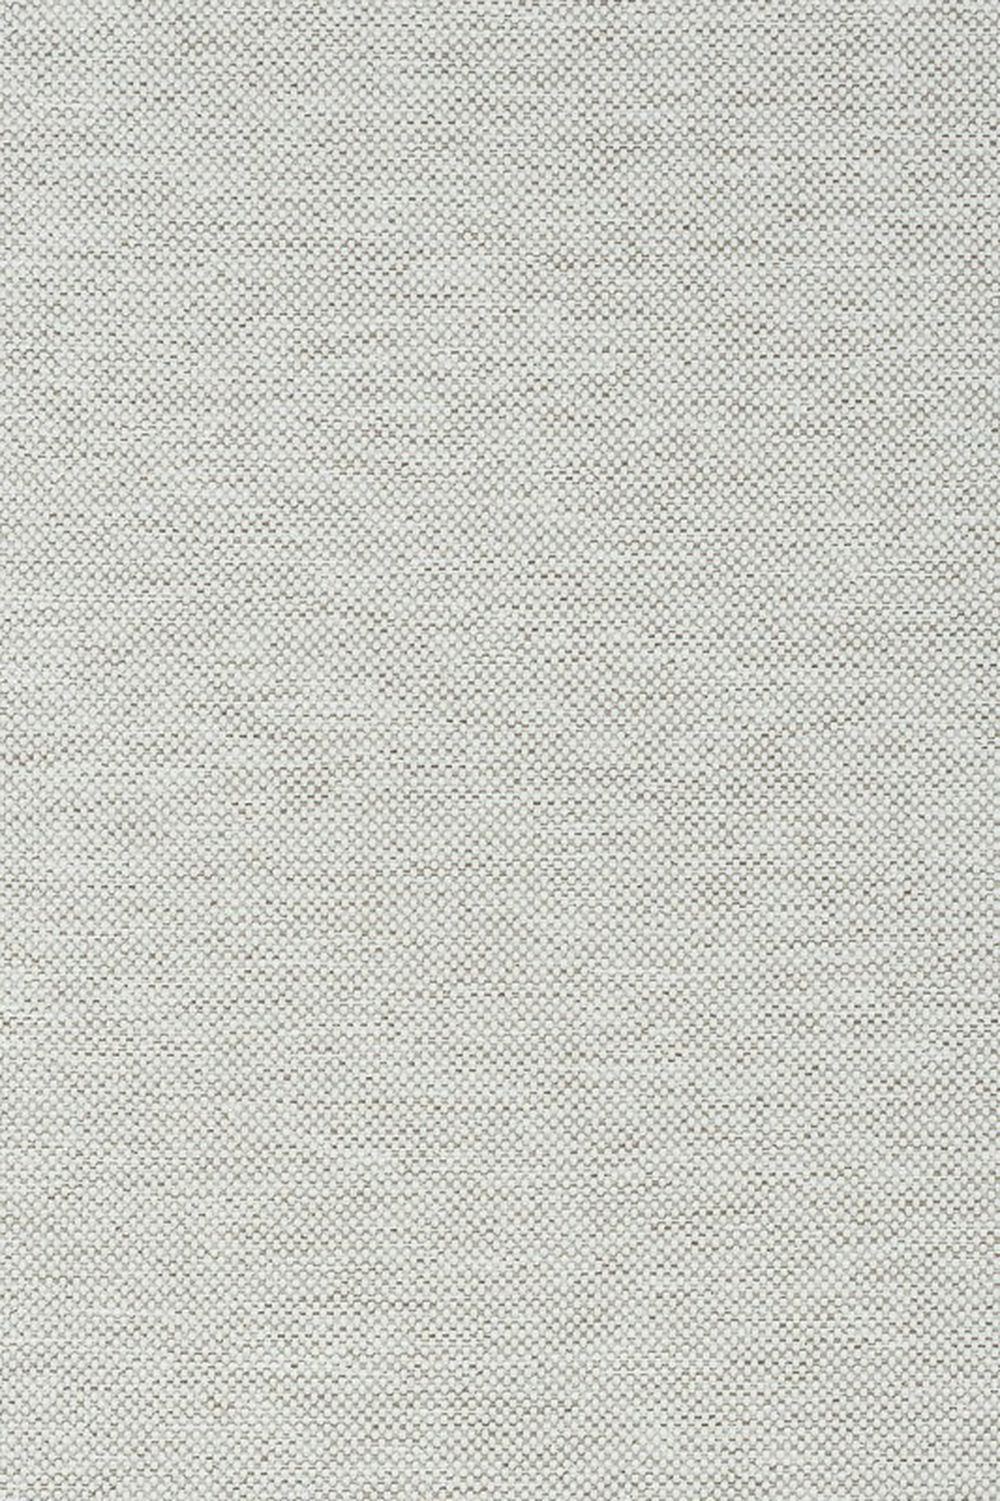 Photo of the fabric Dream Weaver FR 300* Cloud swatch by James Dunlop. Use for Drapery. Style of Dim Out, Plain